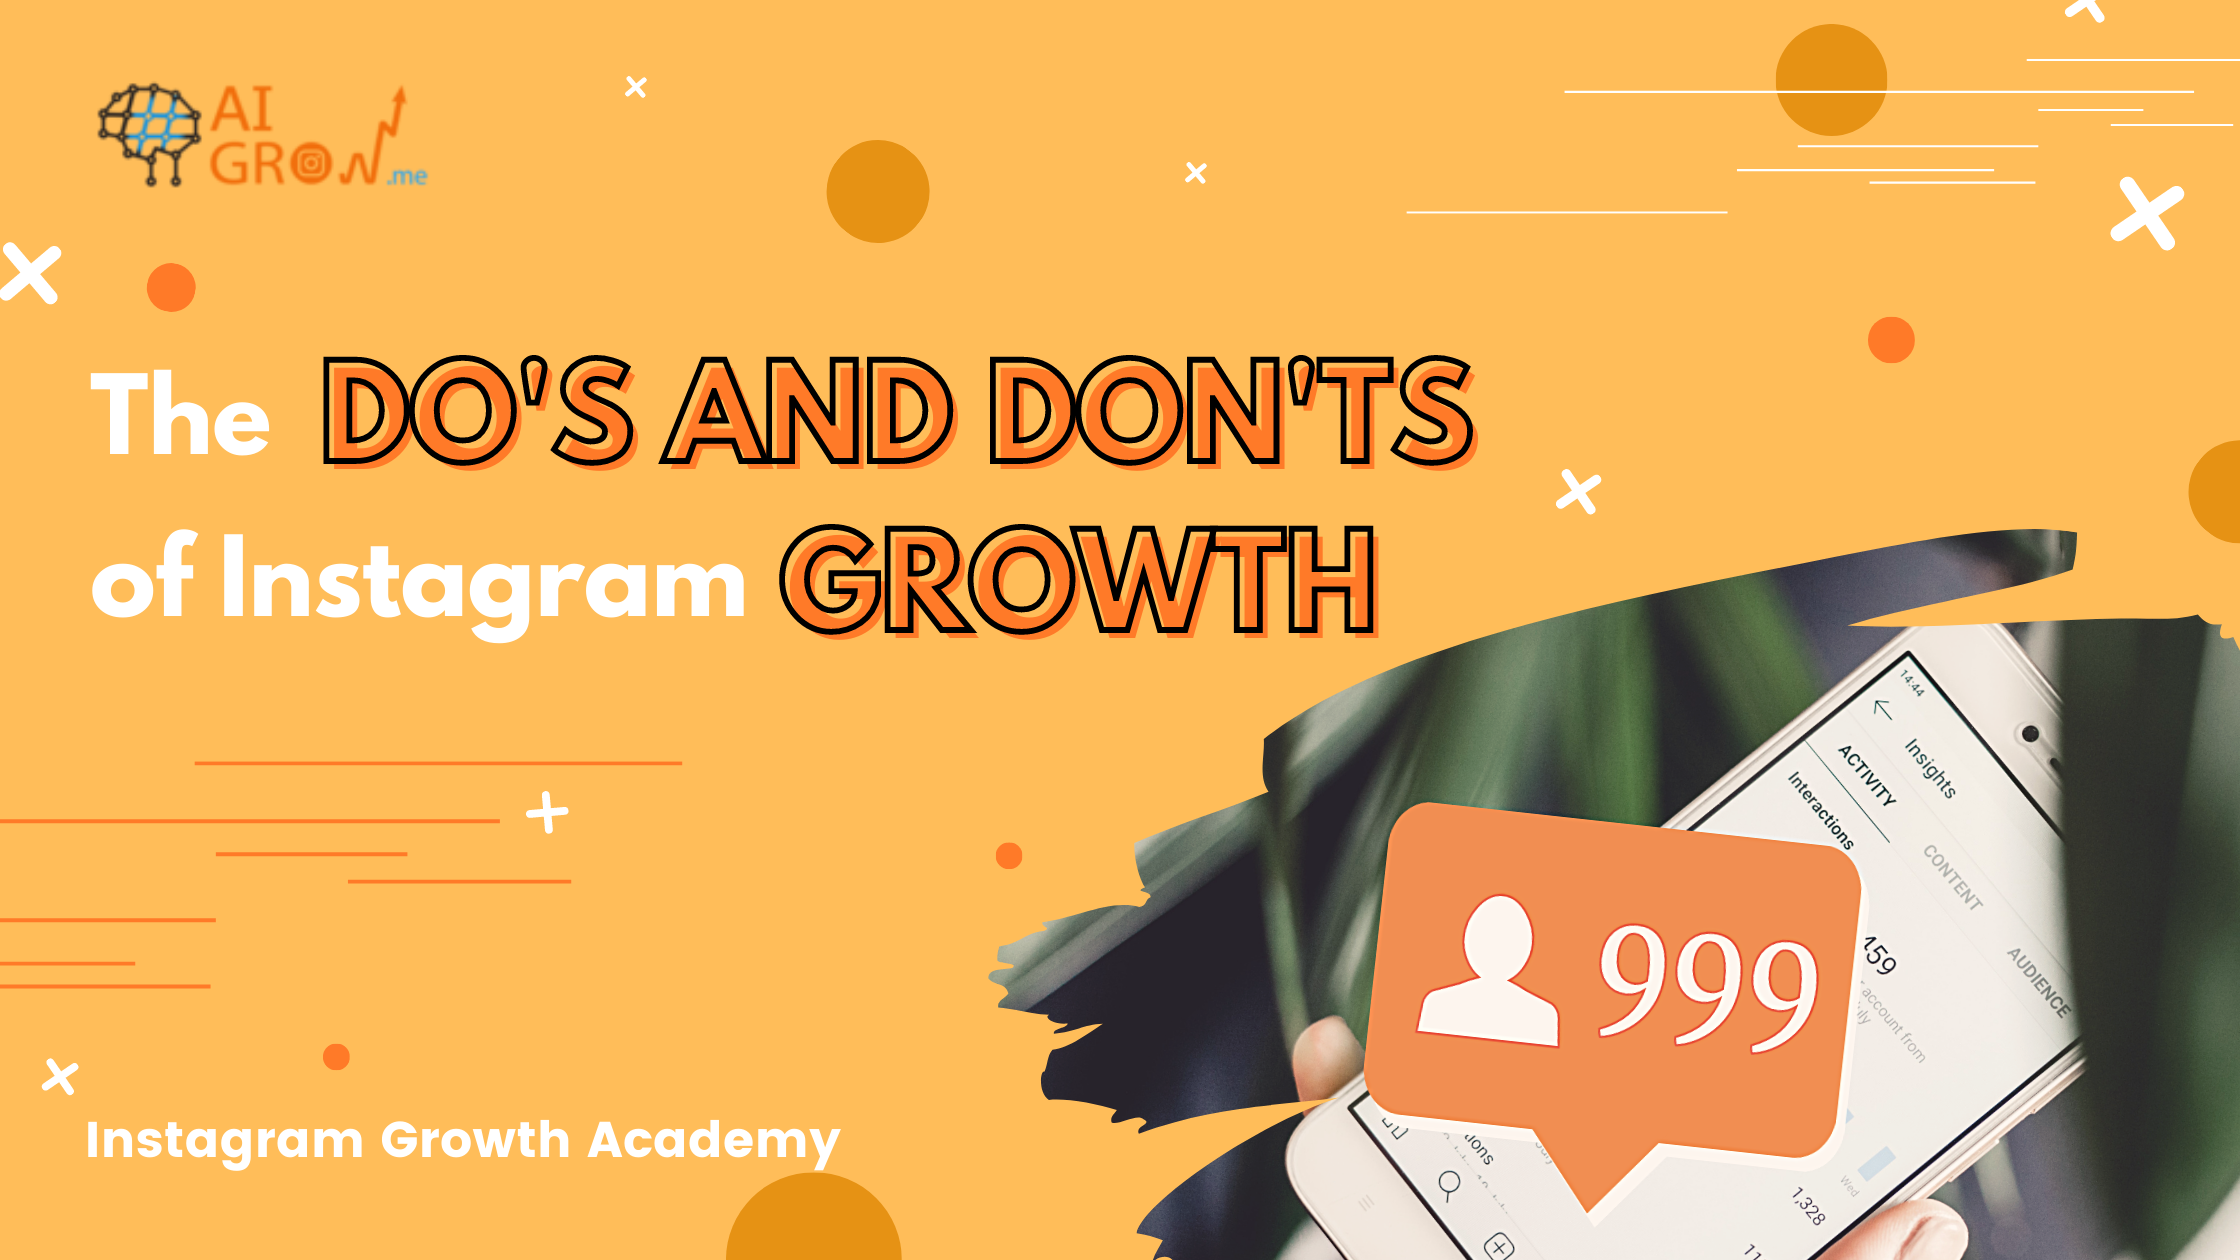 The Do's and Don'ts of Instagram Growth